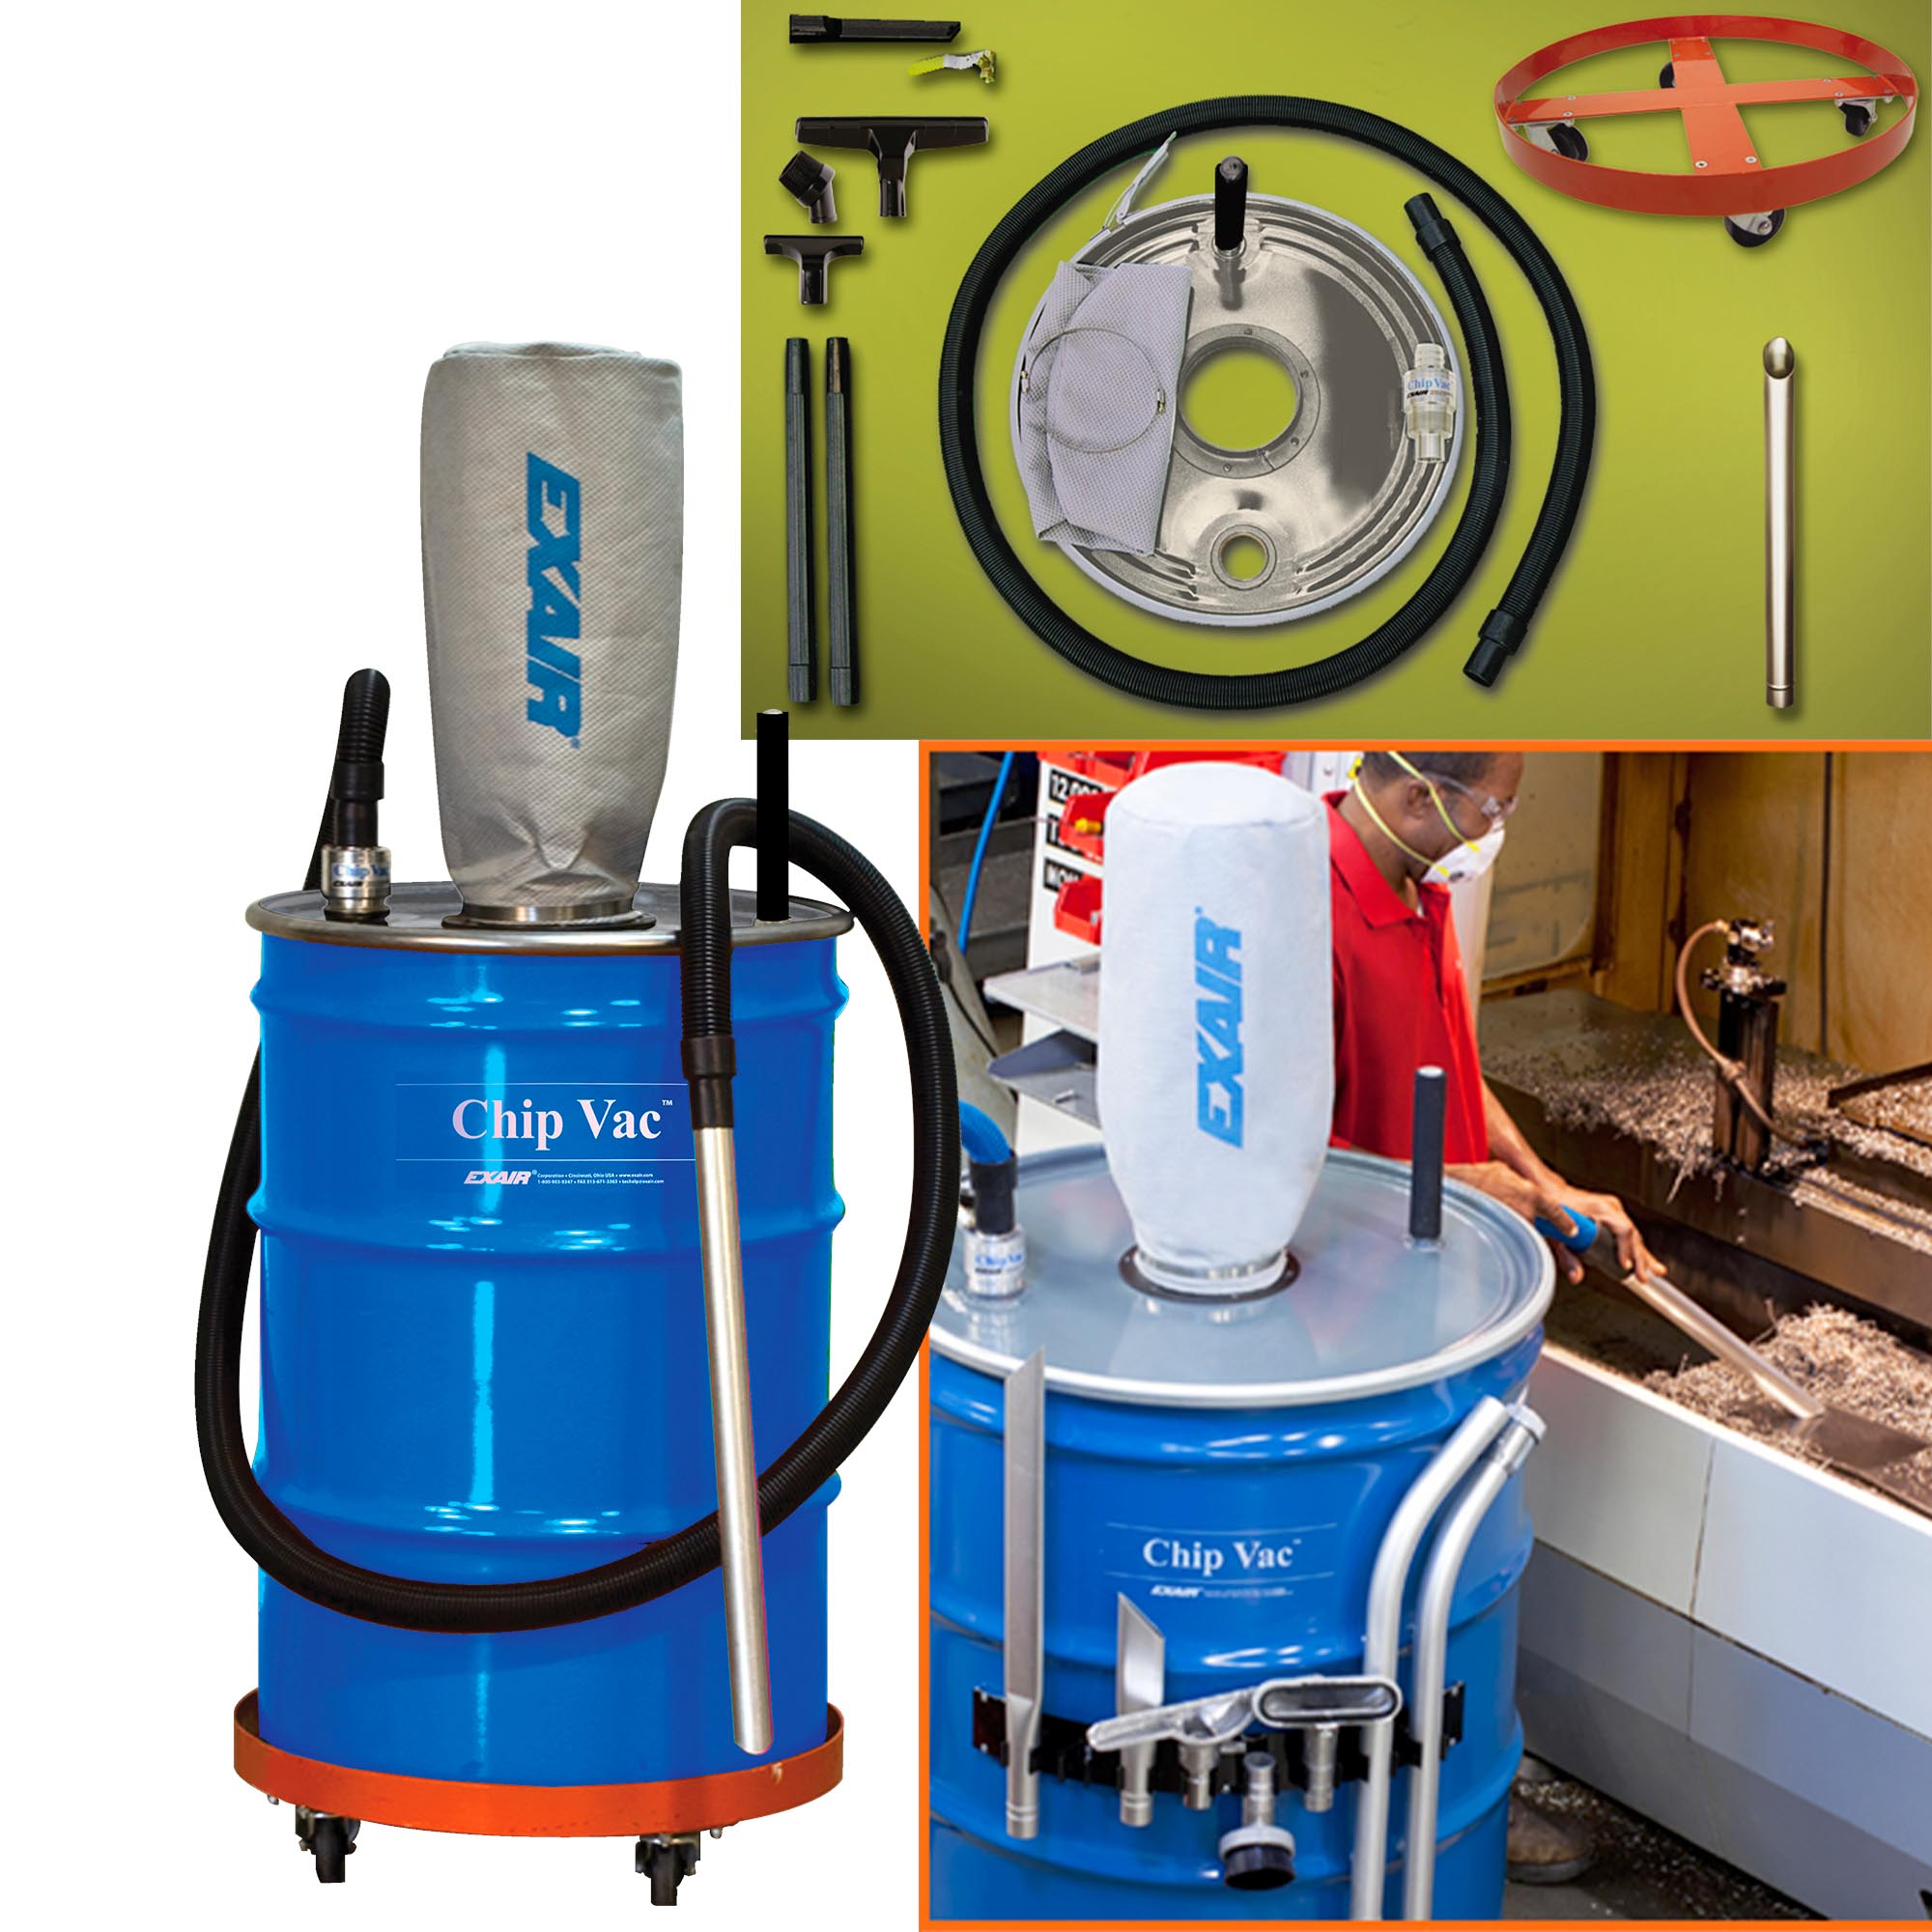 Chip VAc systems include the drum lid assembly, vacuum hose, chip wand, and plastic tools. Additional accessories available.